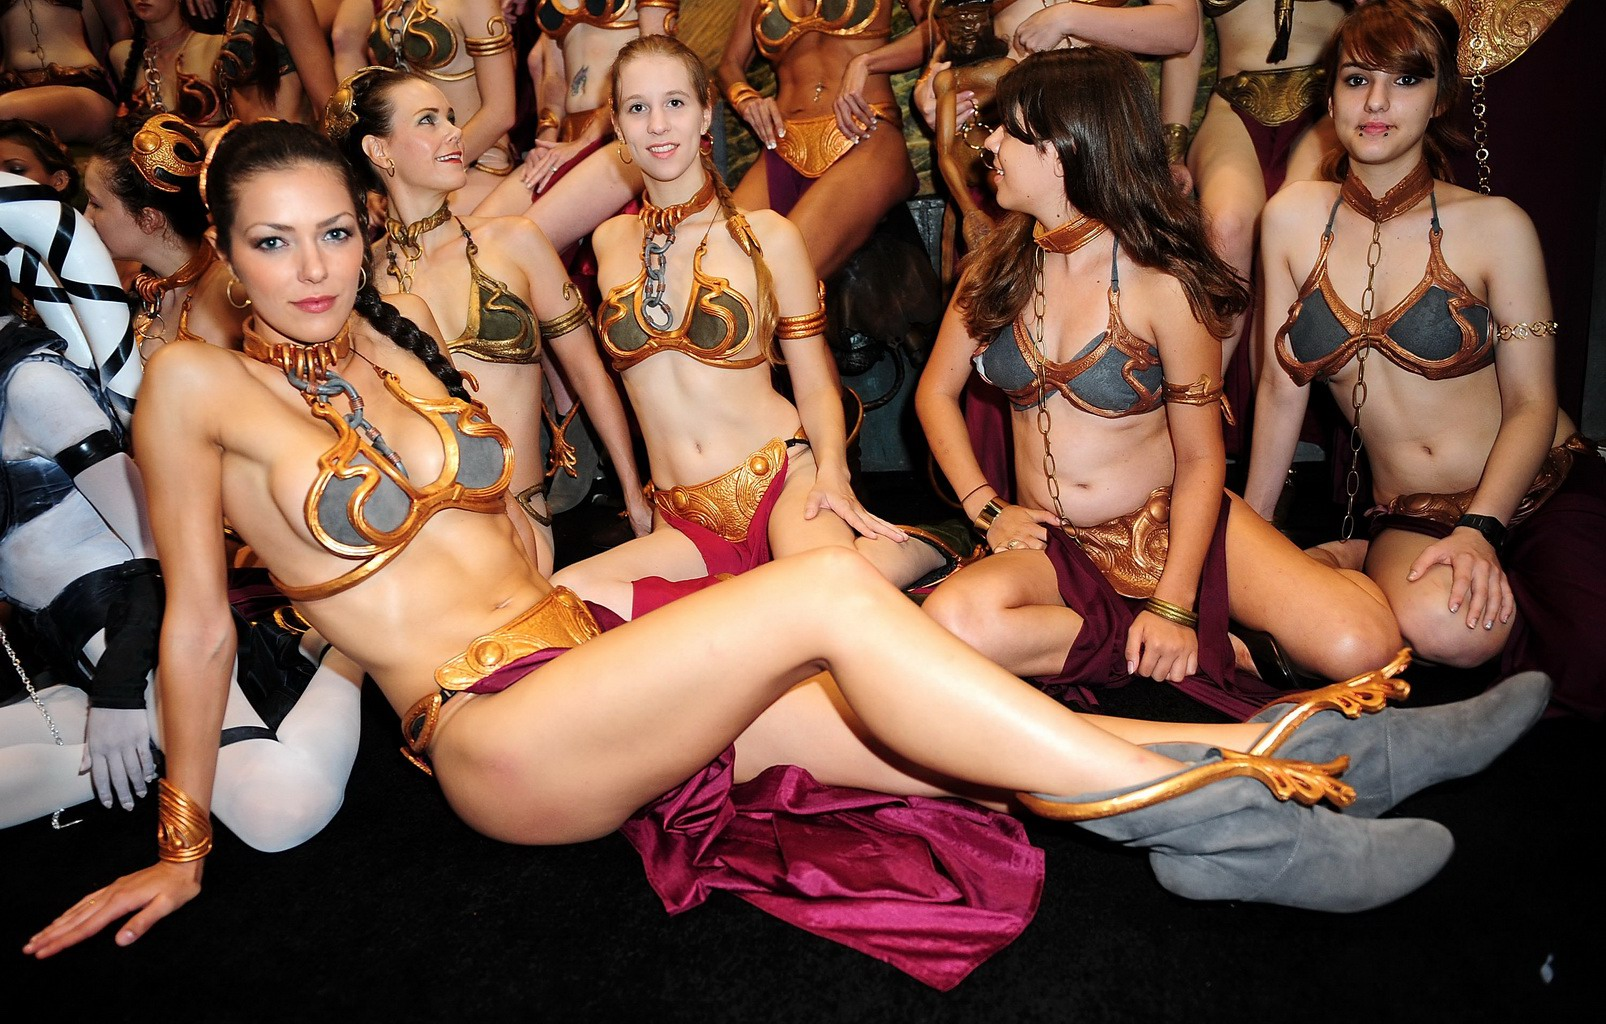 Hot nude star wars cosplay porn movie